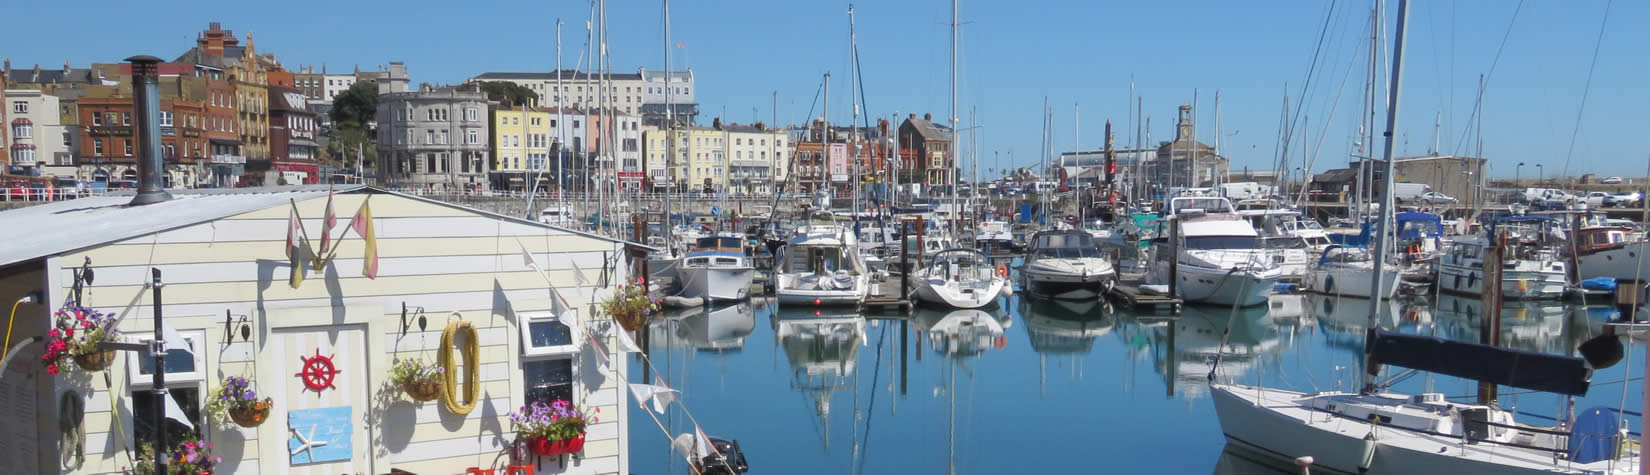 Ramsgate Royal Harbour - Visit Ramsgate